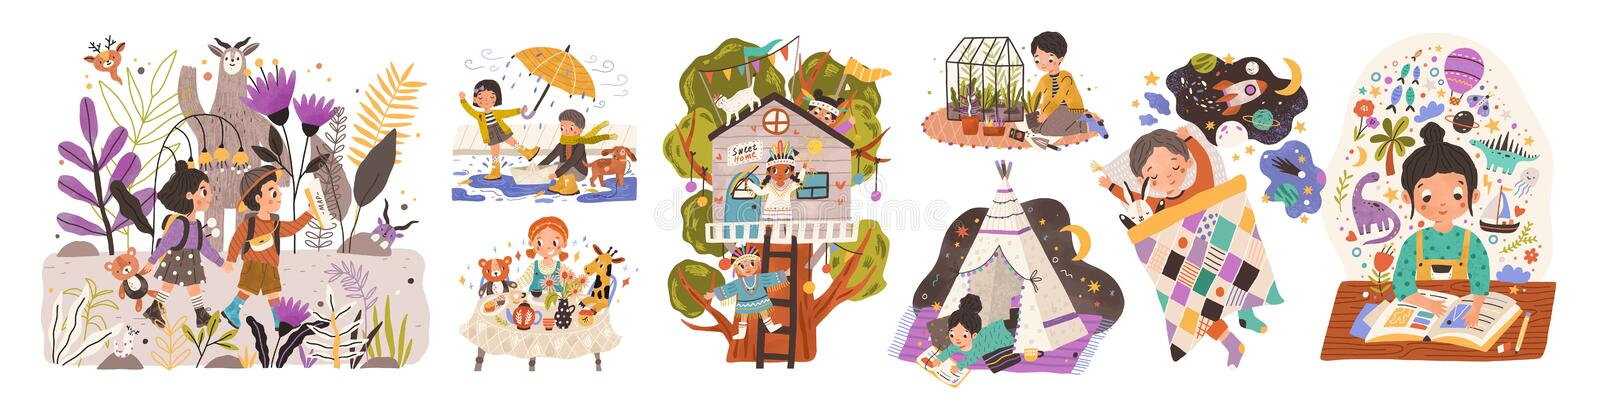 World of childhood flat vector illustrations set. Kids cartoon characters playing games and doing childish activities stock illustration